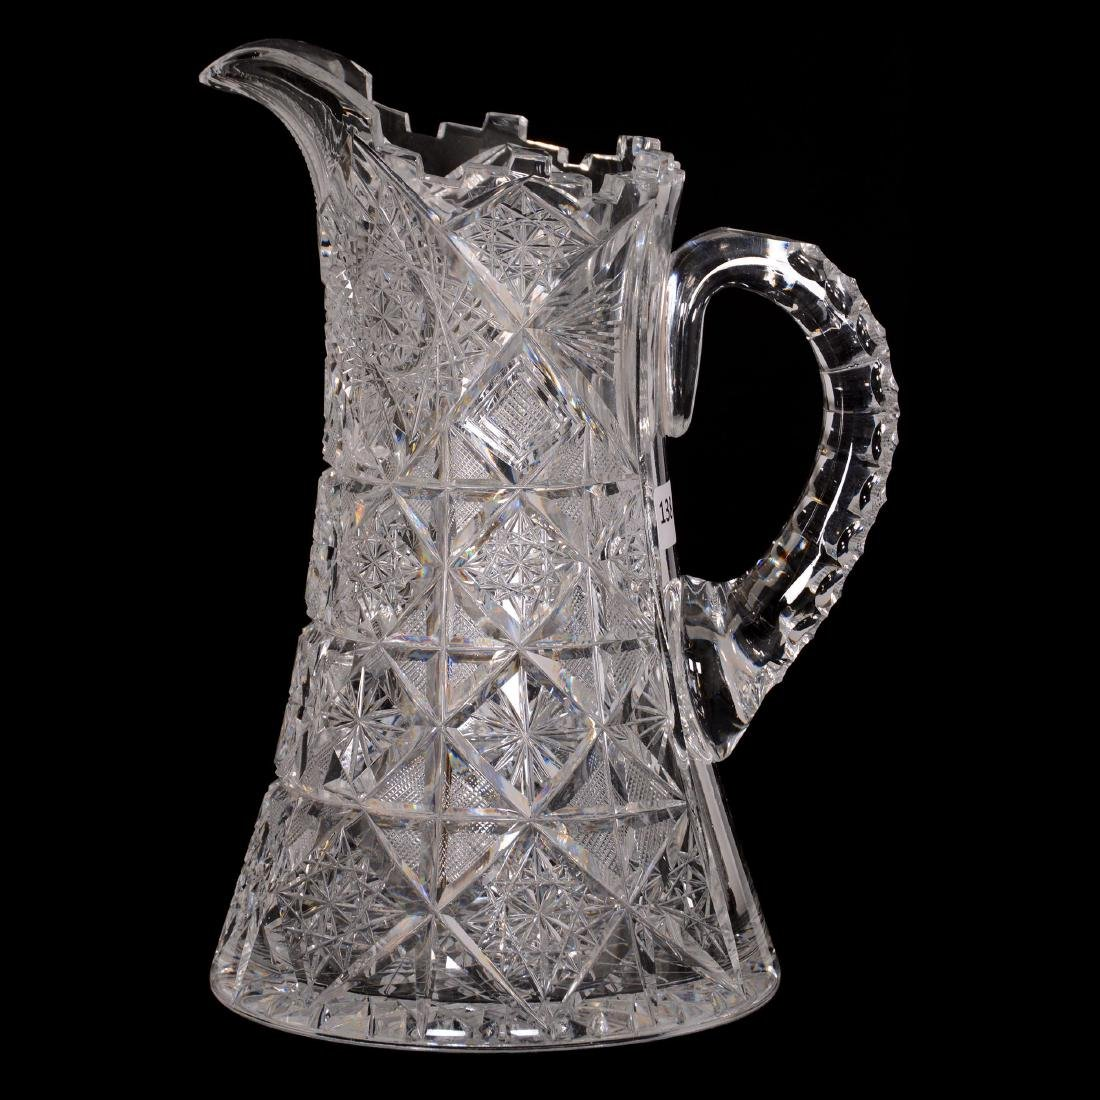 Water Pitcher - ABCG